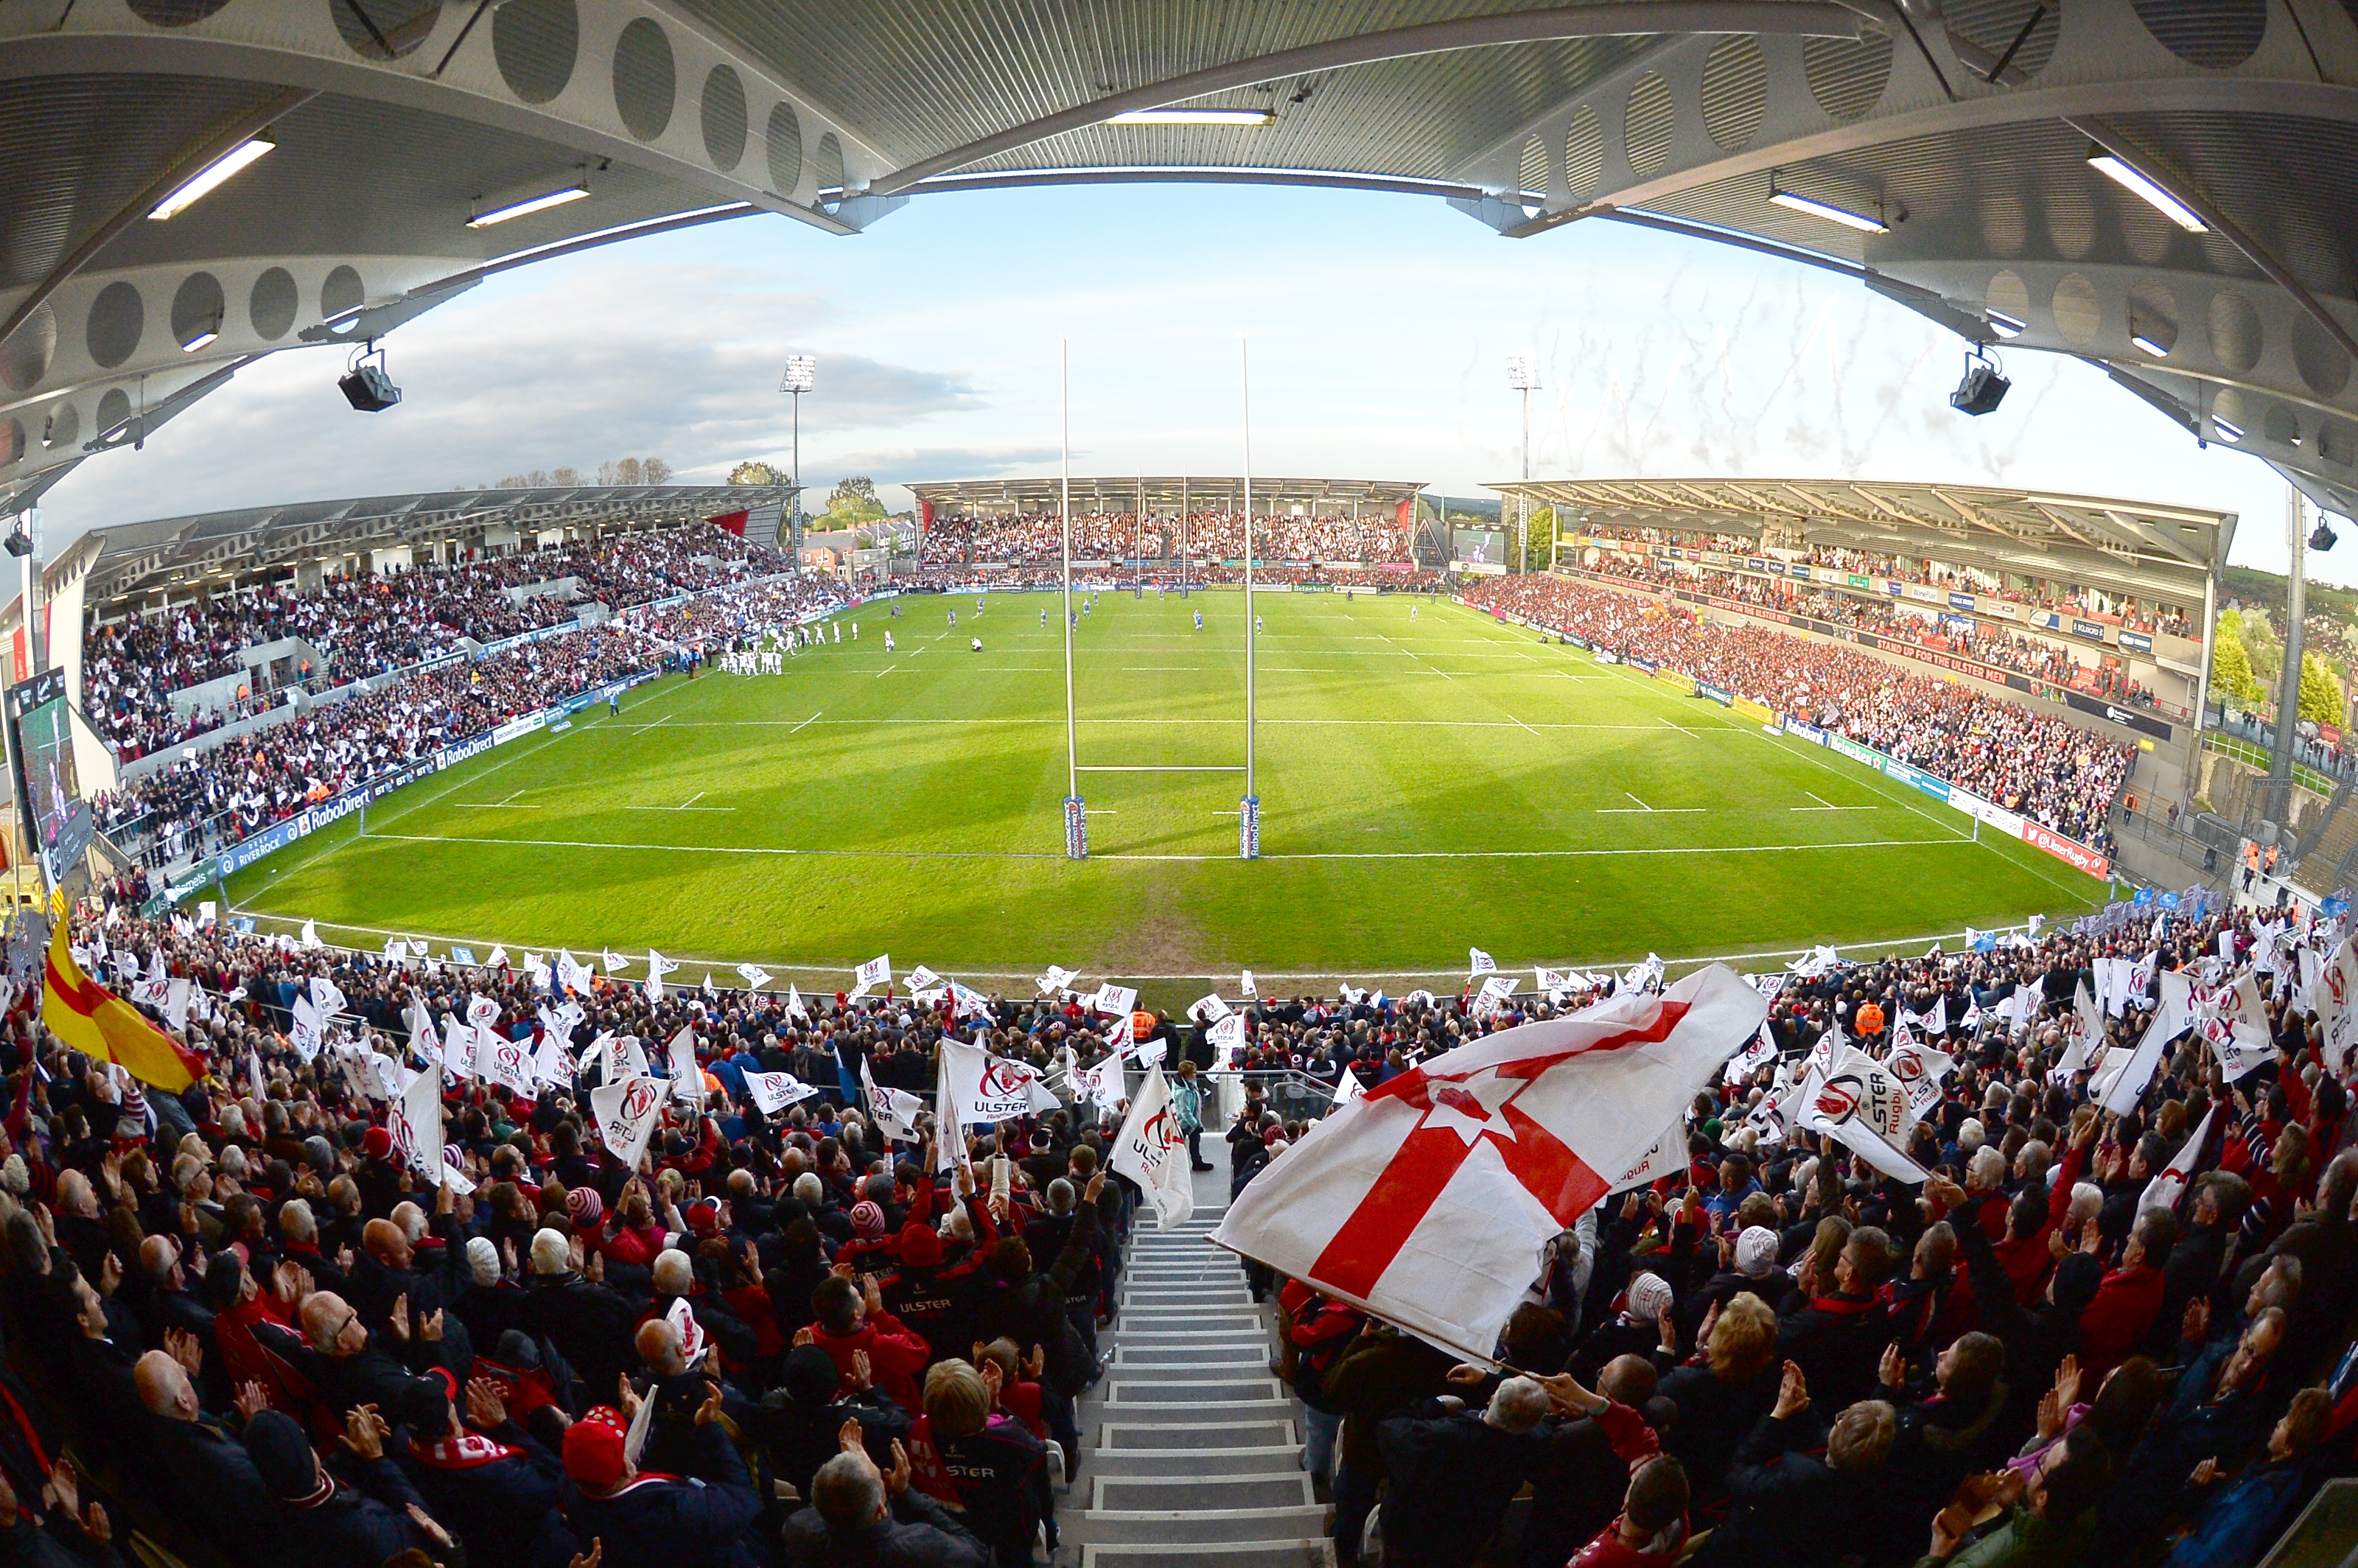 Ulster_Rugby_Ground_Image